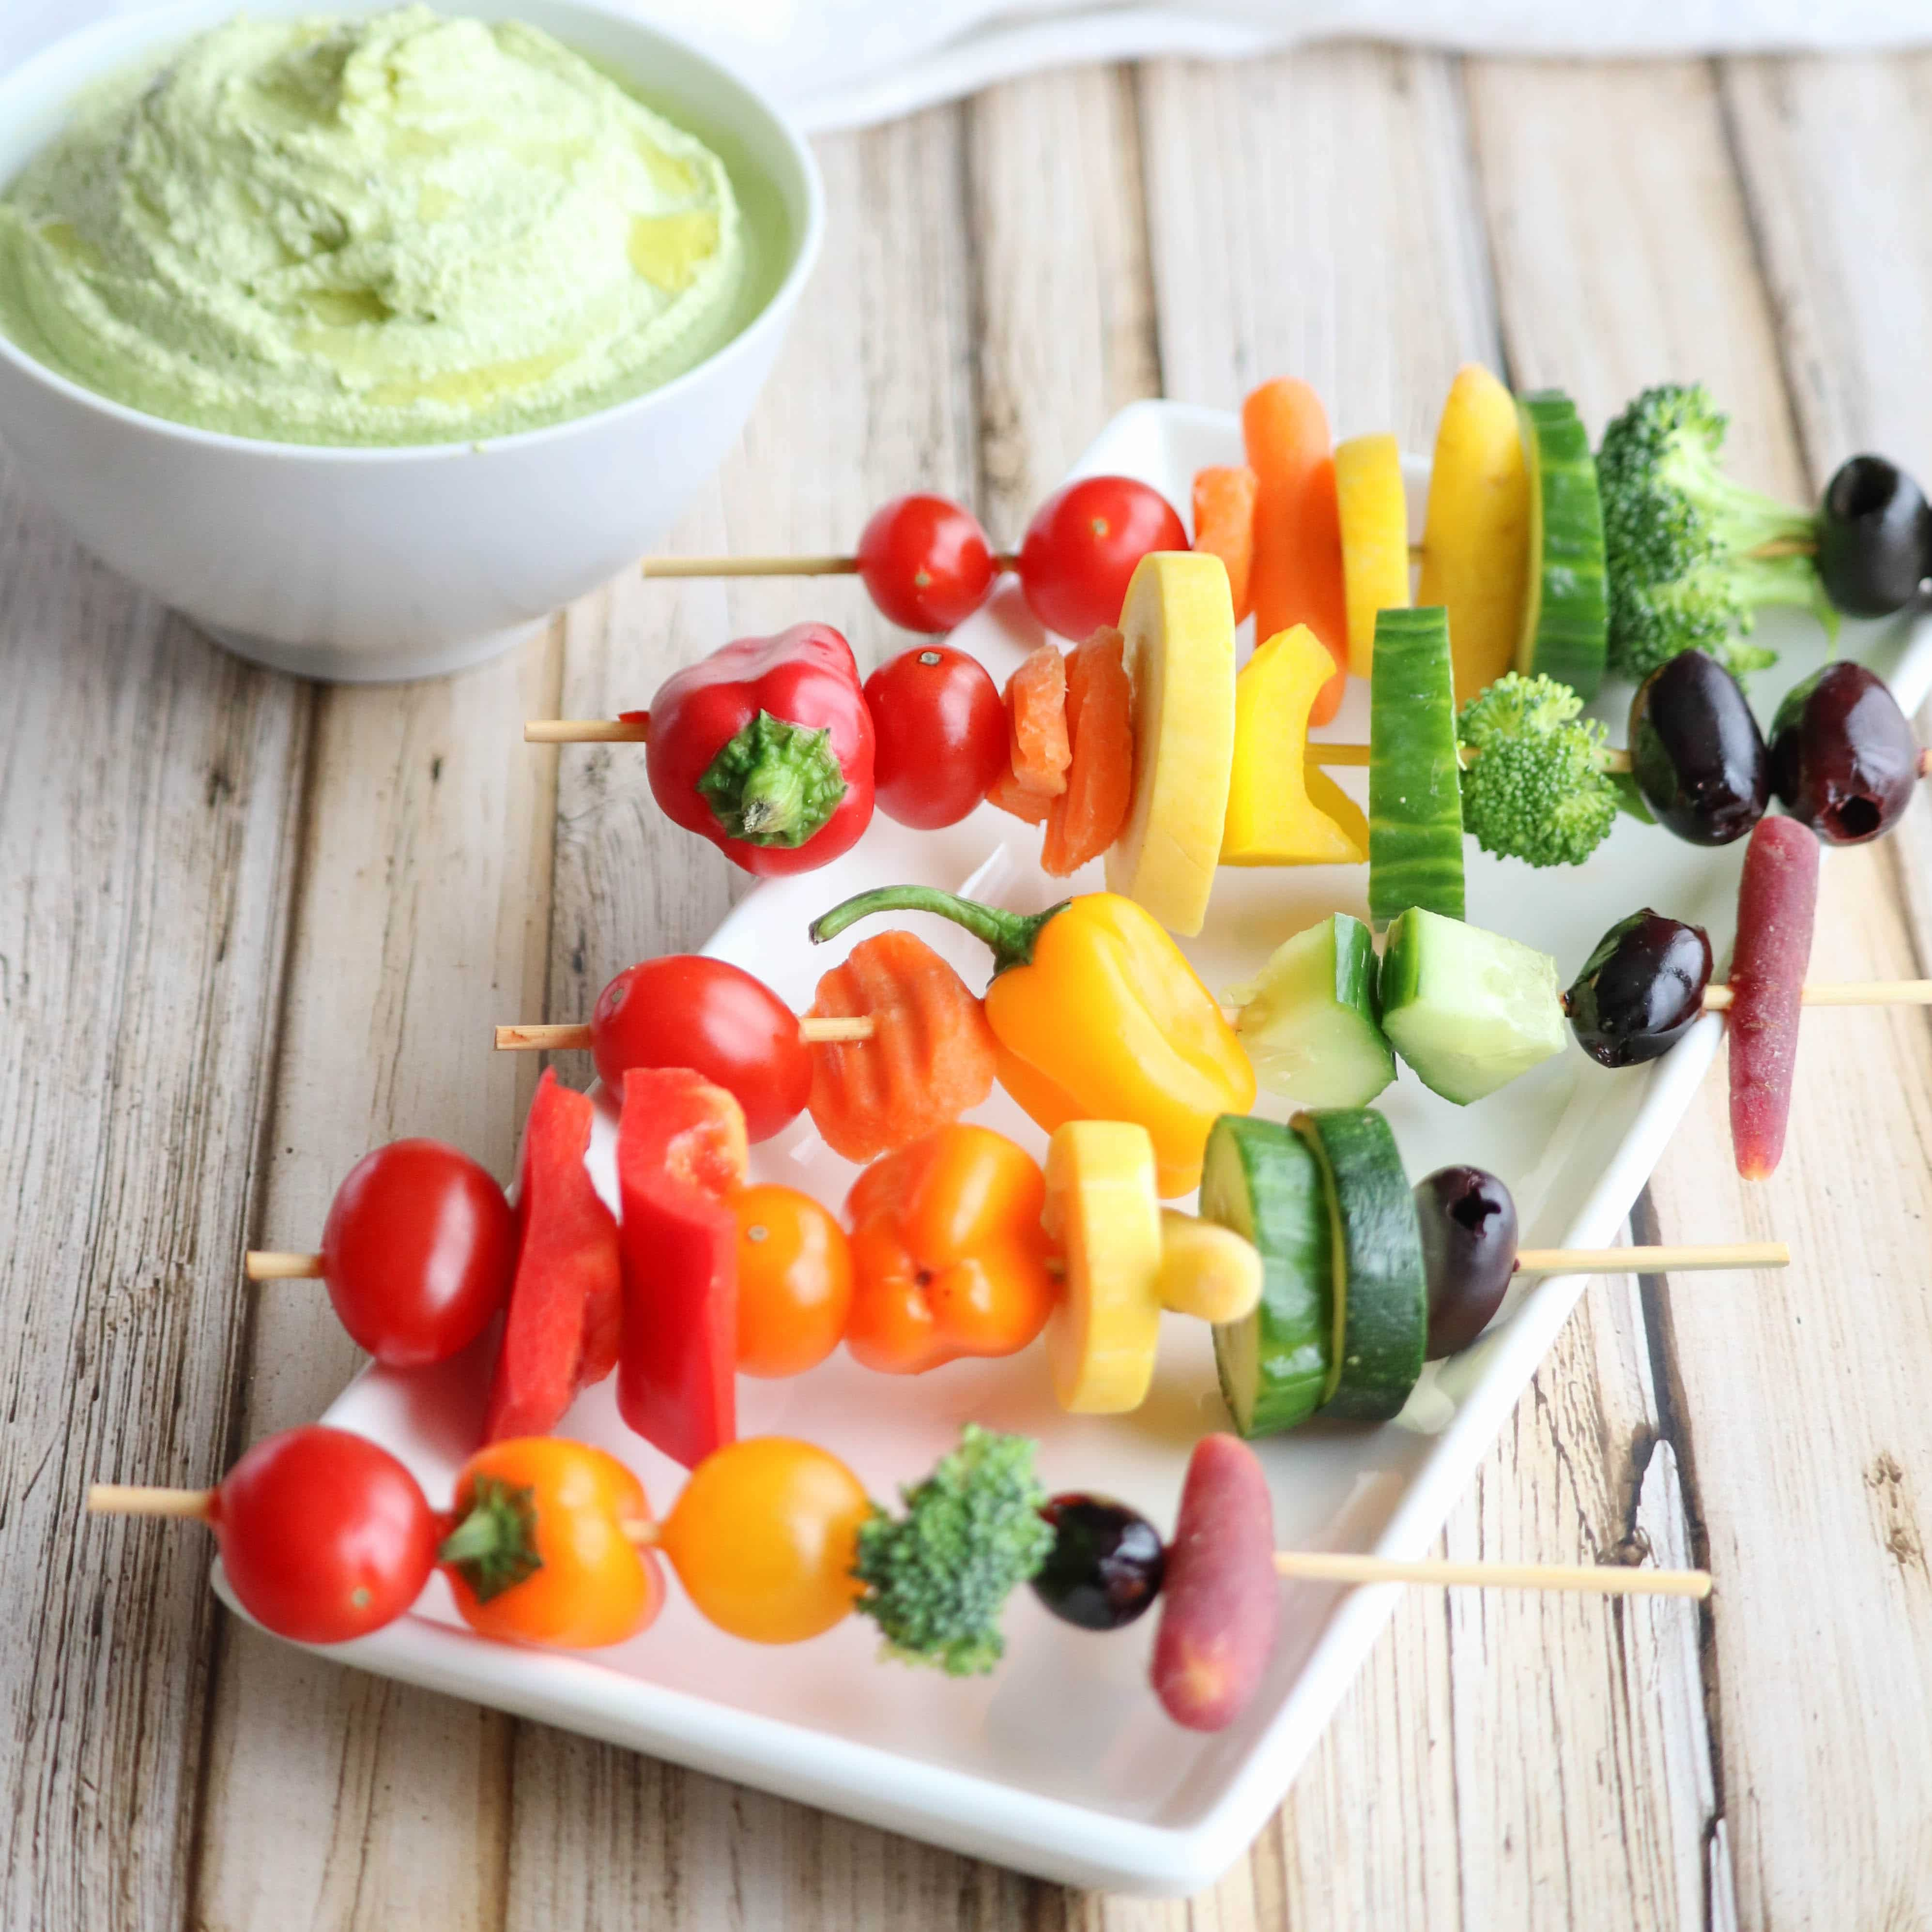 These Rainbow Veggie Kabobs are so much more fun than veggies and dip on that plain-old veggie tray! Perfect for picnics and parties! And a great way to inspire kids to eat more veggies - they'll love creating their own! | www.TwoHealthyKitchens.com